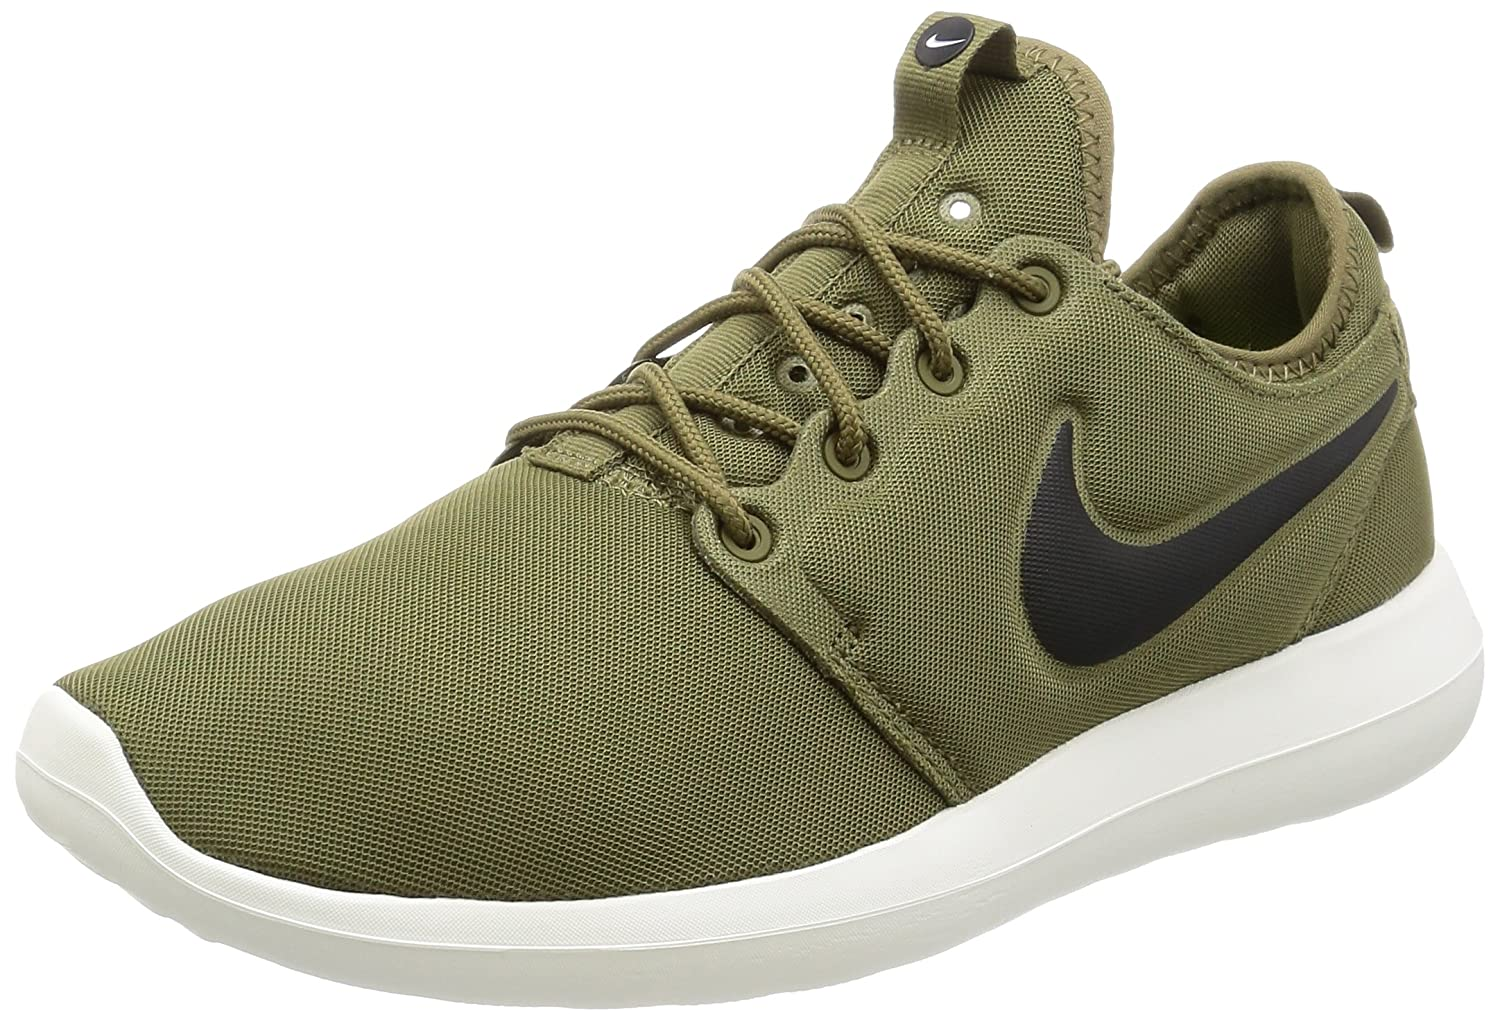 0ba6fc57e28f Nike Mens Roshe Two Running Shoes Iguana Black-SAIL-Volt 844656-200 Size  11. 5  Buy Online at Low Prices in India - Amazon.in